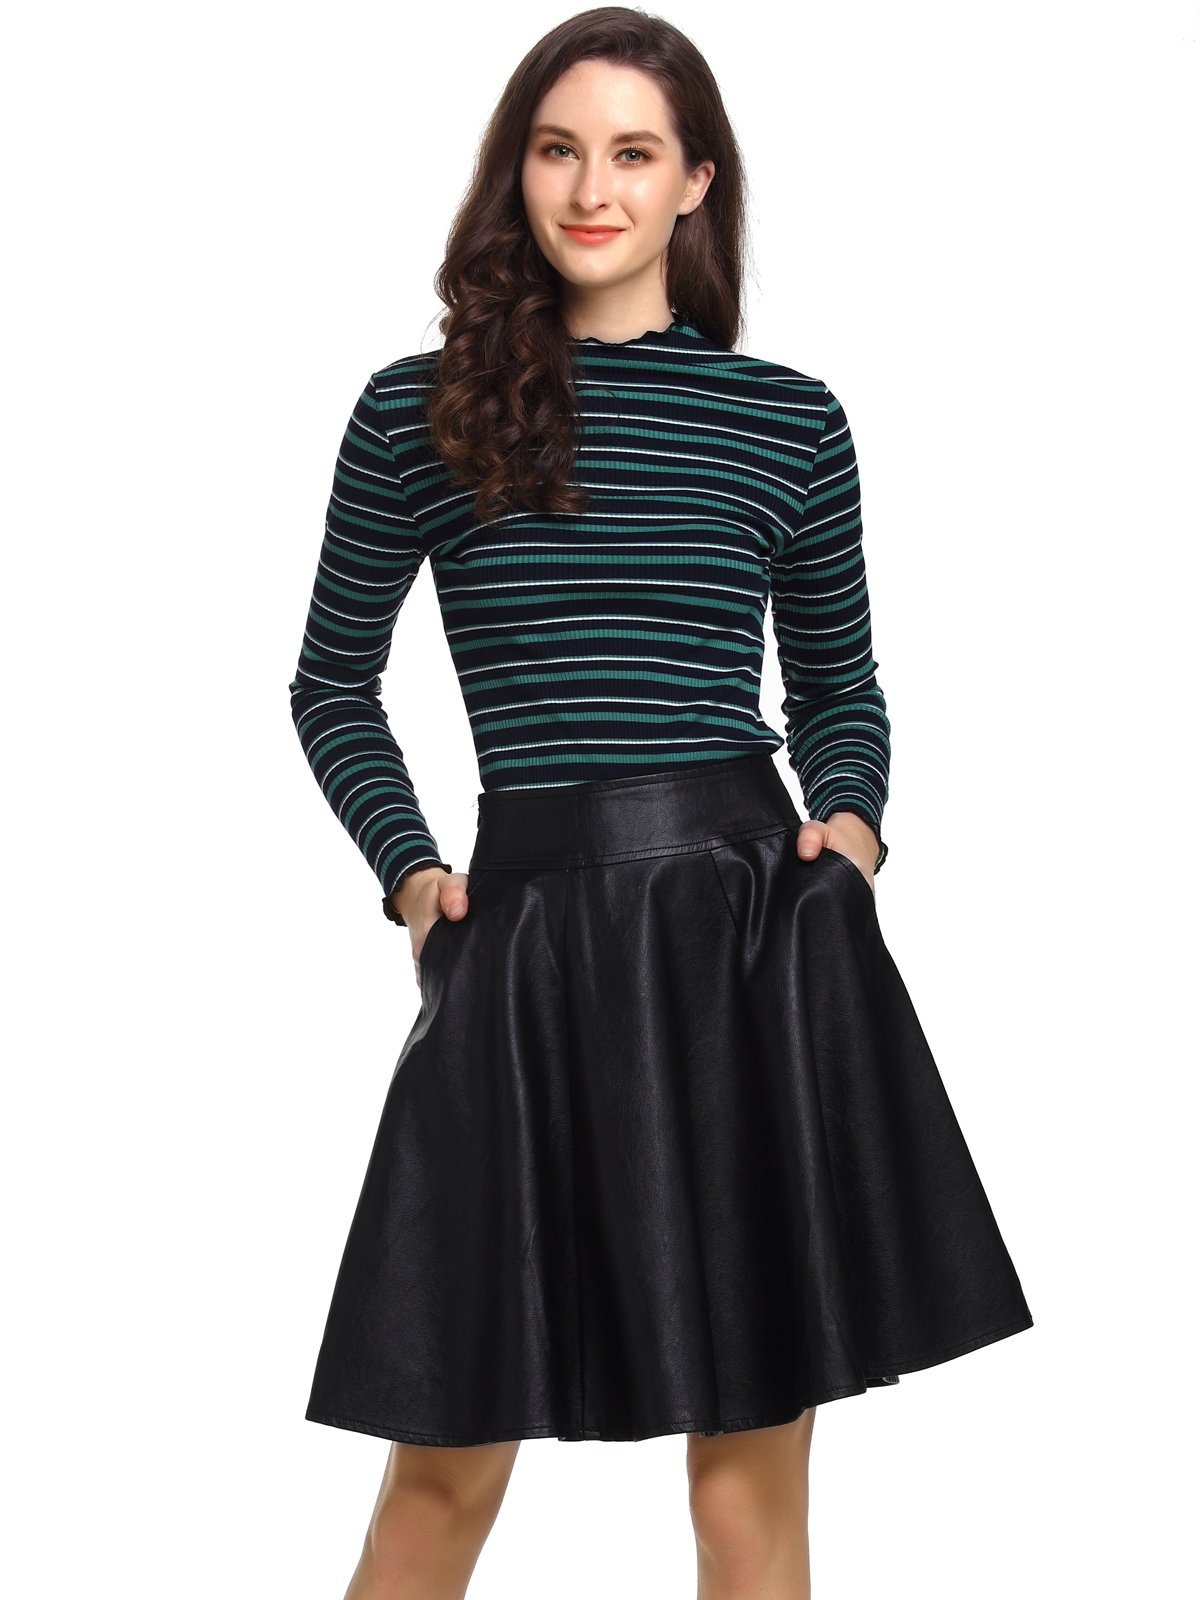 Beluring Black Pleated Skirts for Women Plus Size Faux Leather